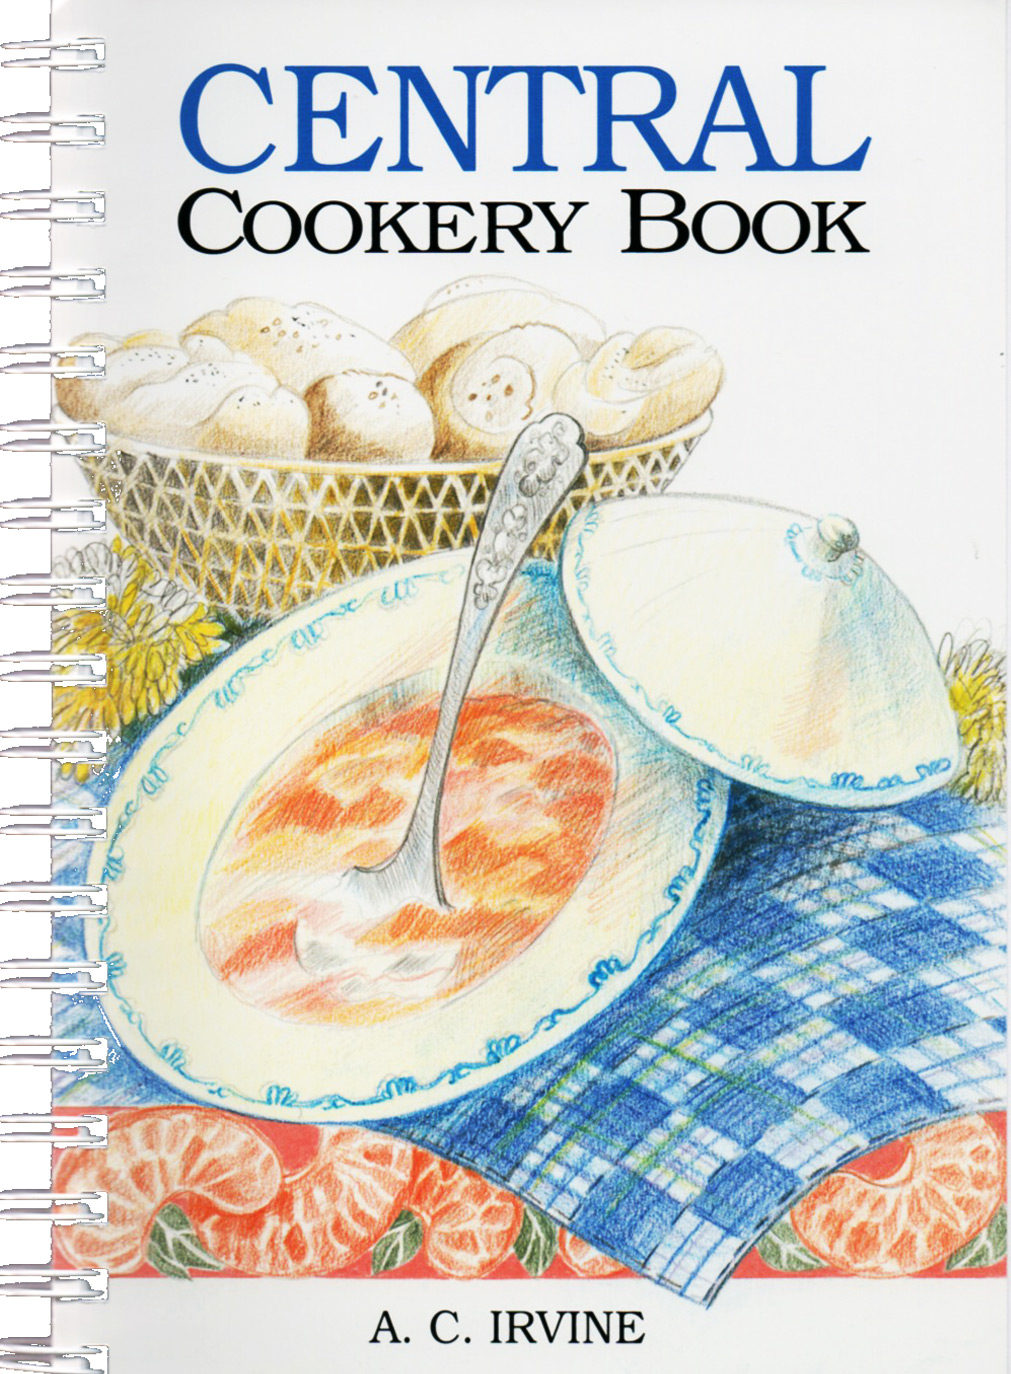 Central Cookery Book